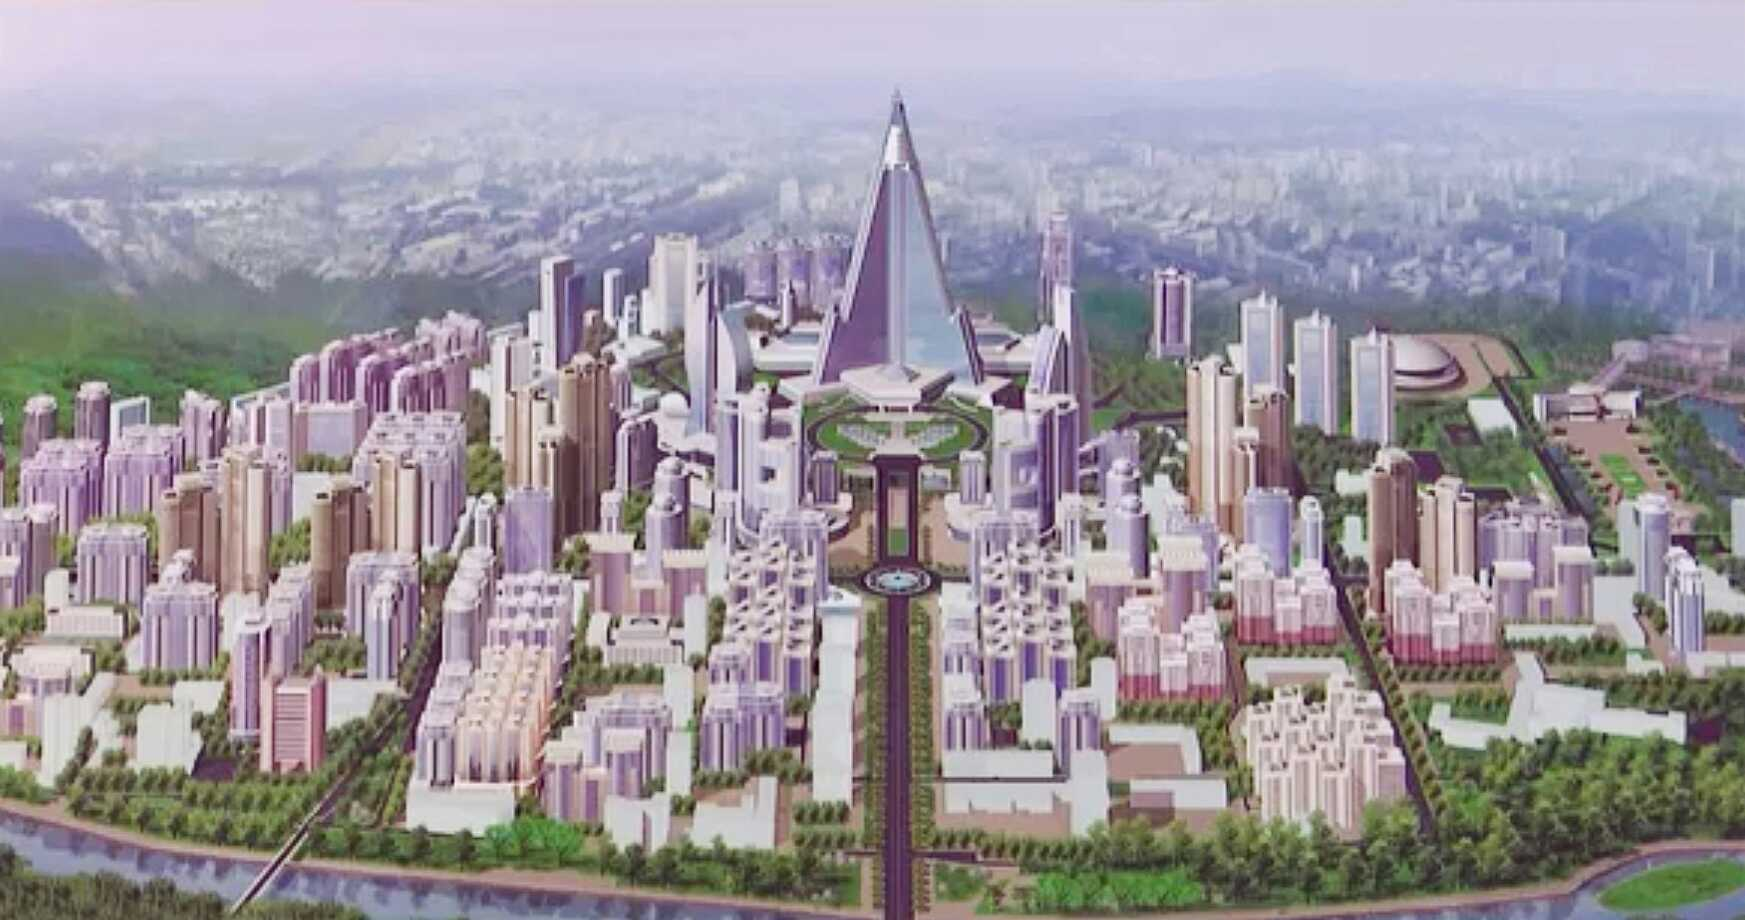 KCTV reveals large-scale plans for district surrounding iconic Ryugyong Hotel